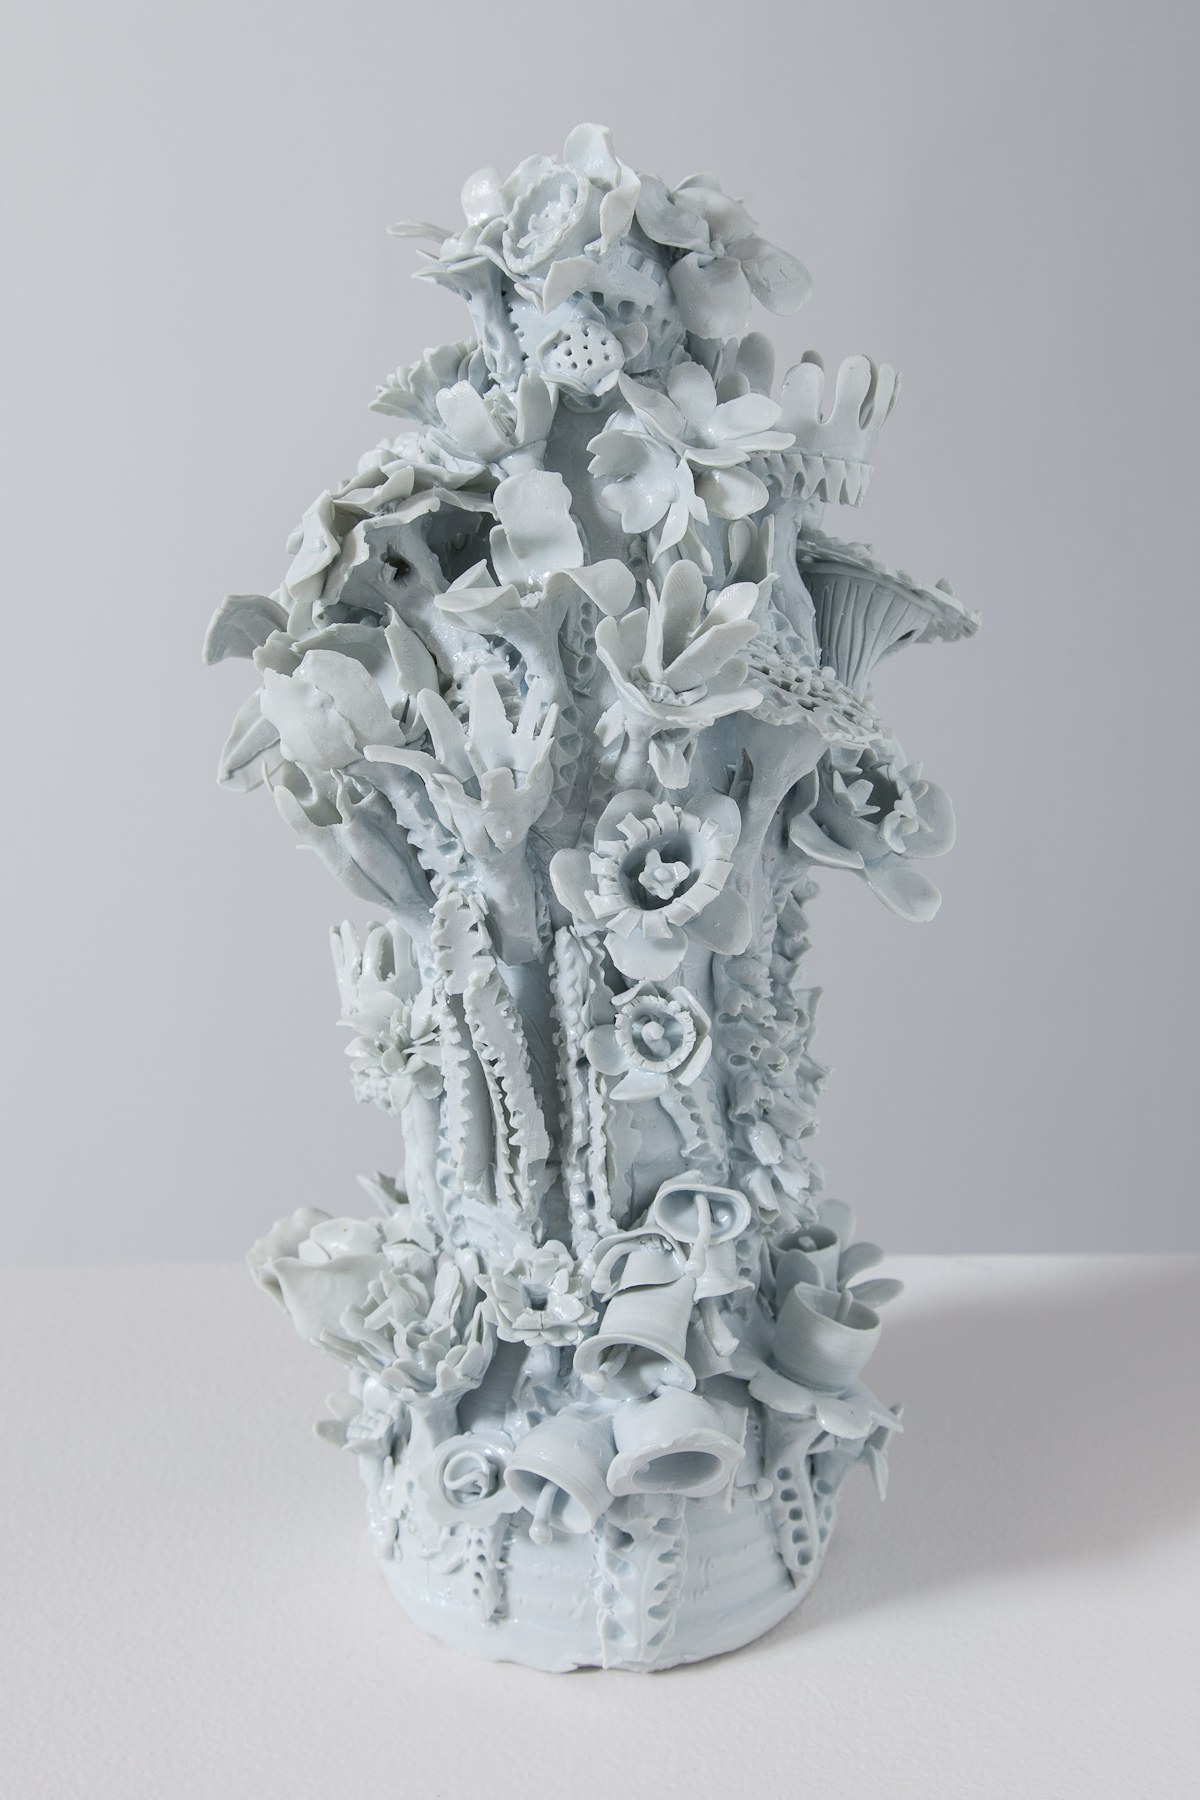 Lamp Base Sculpture, Flower Style (Small) #1, 2012 glazed porcelain